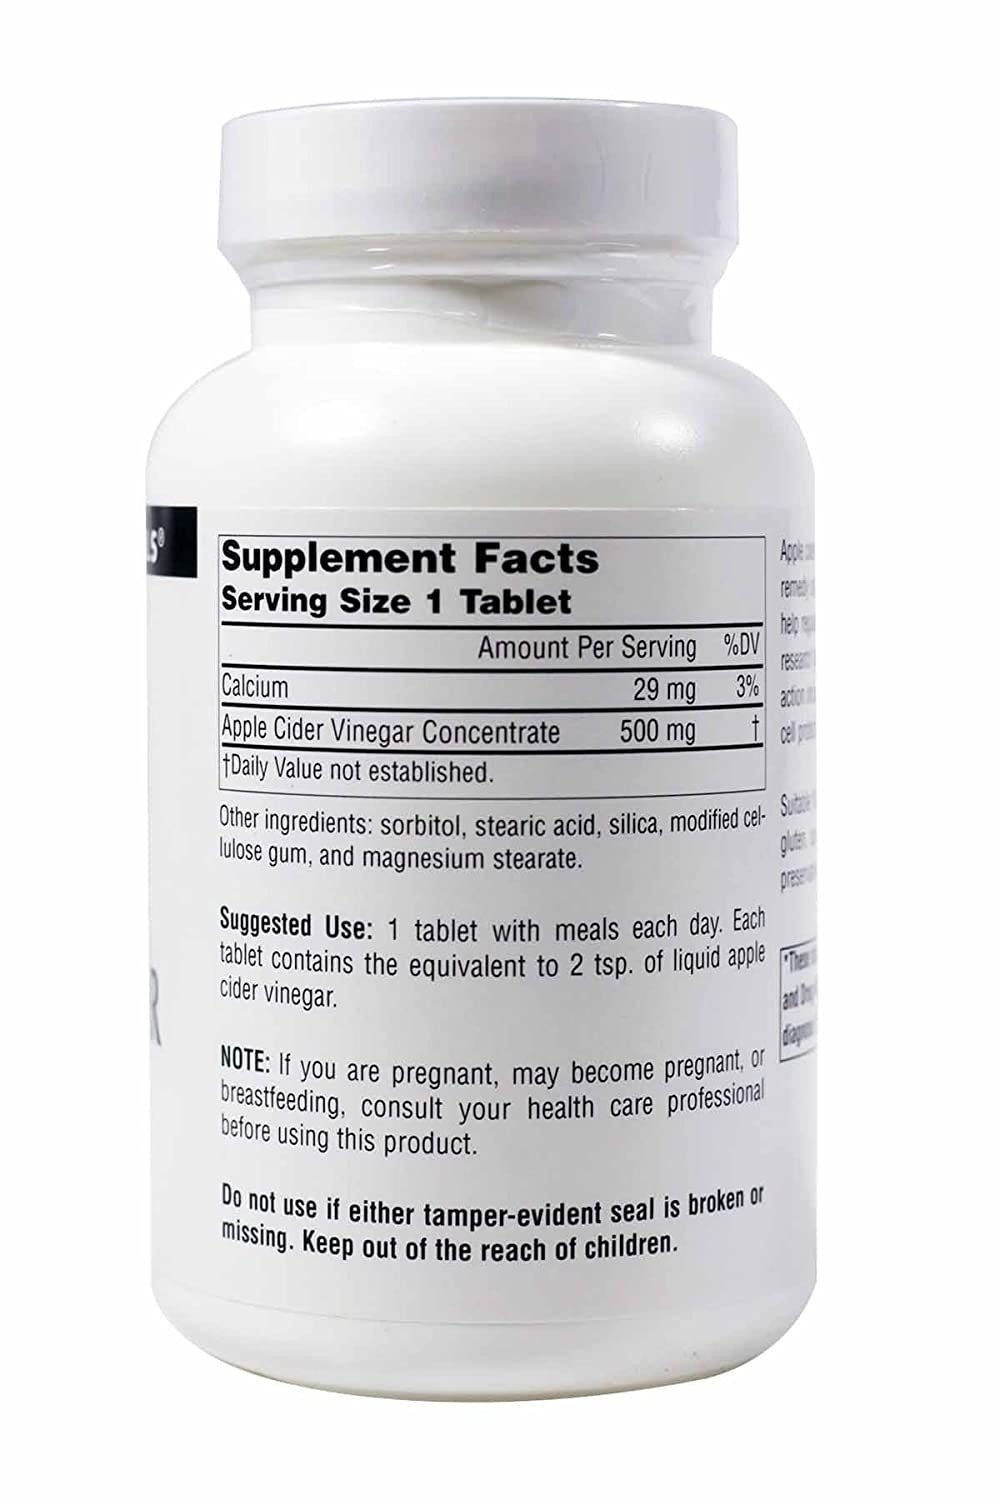 Source Naturals Apple Cider Vinegar 500mg Dietary Supplement – 180 Tablets Pack of 2